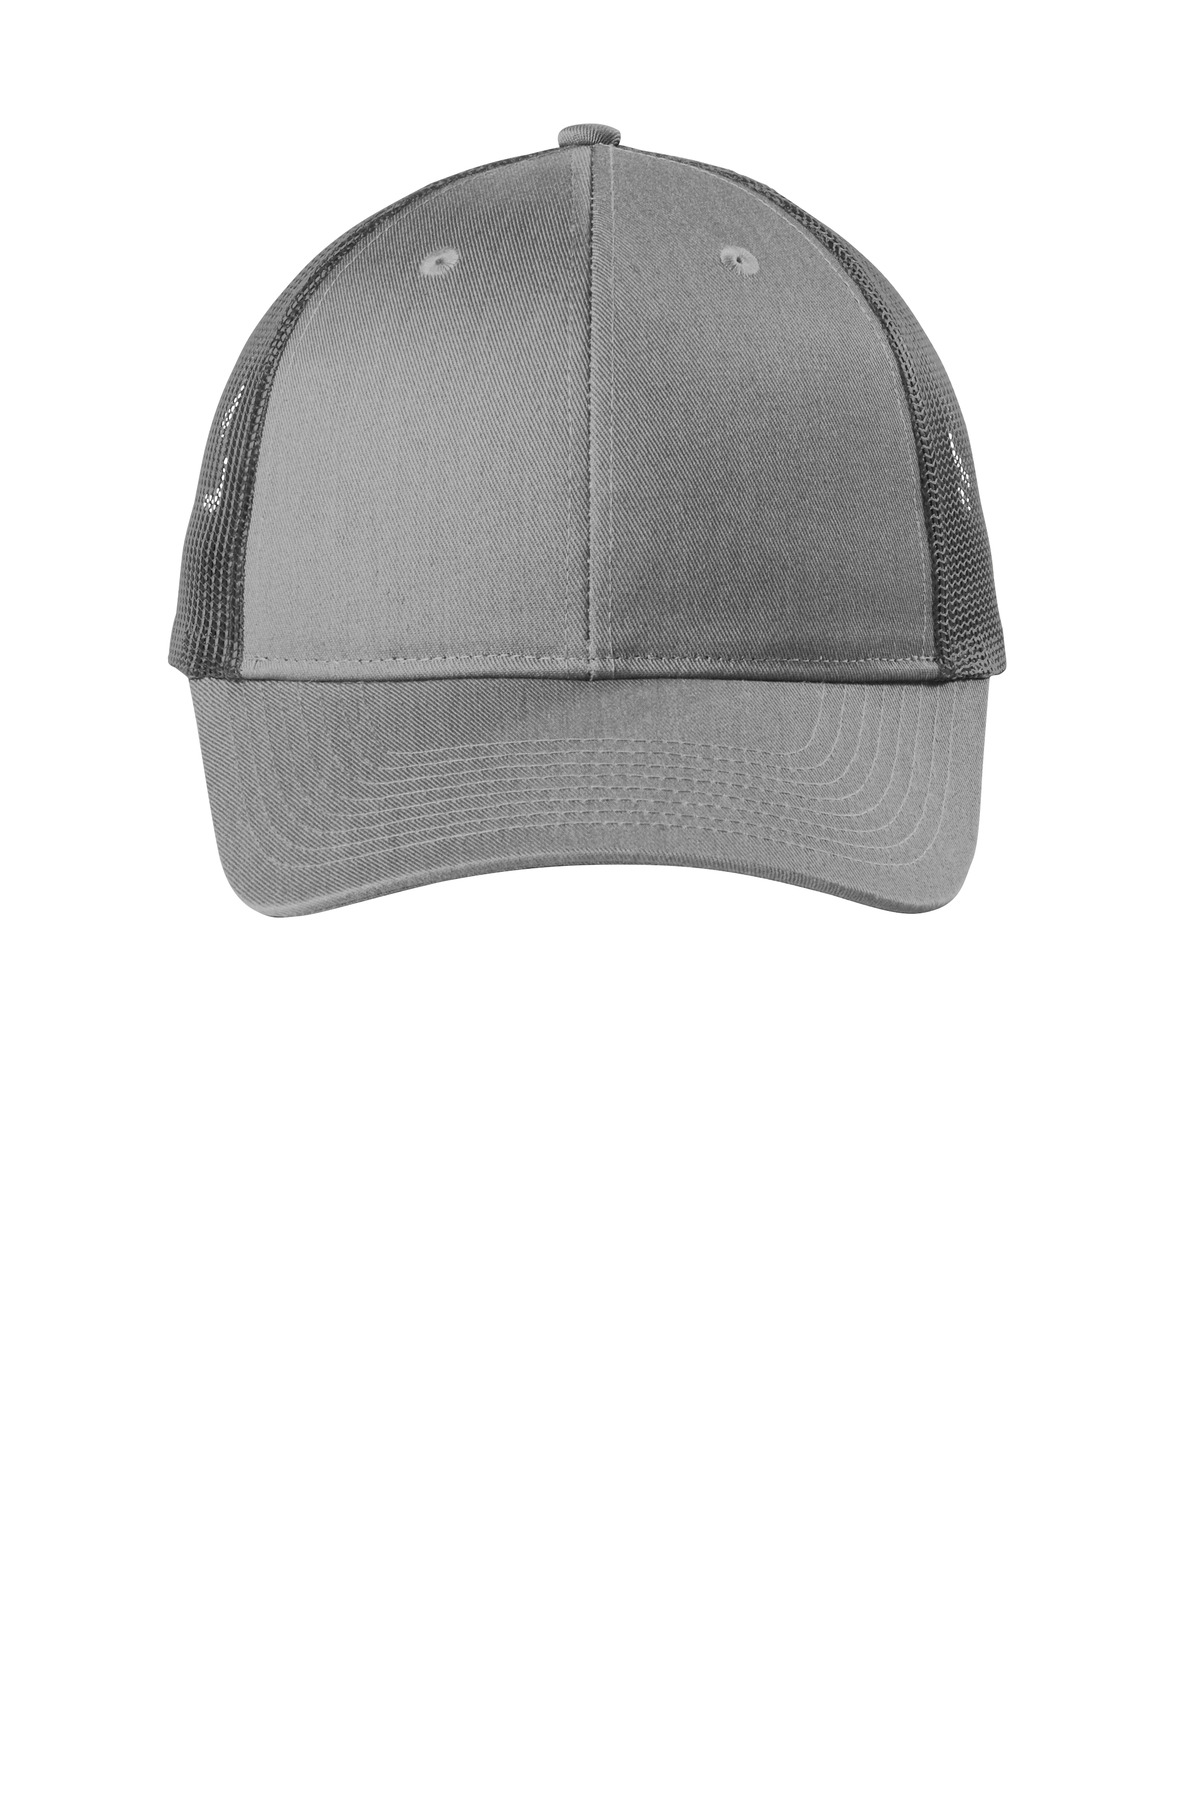 Port Authority  ®  Low-Profile Snapback Trucker Cap. C112LP - Heather Grey/ Grey Steel